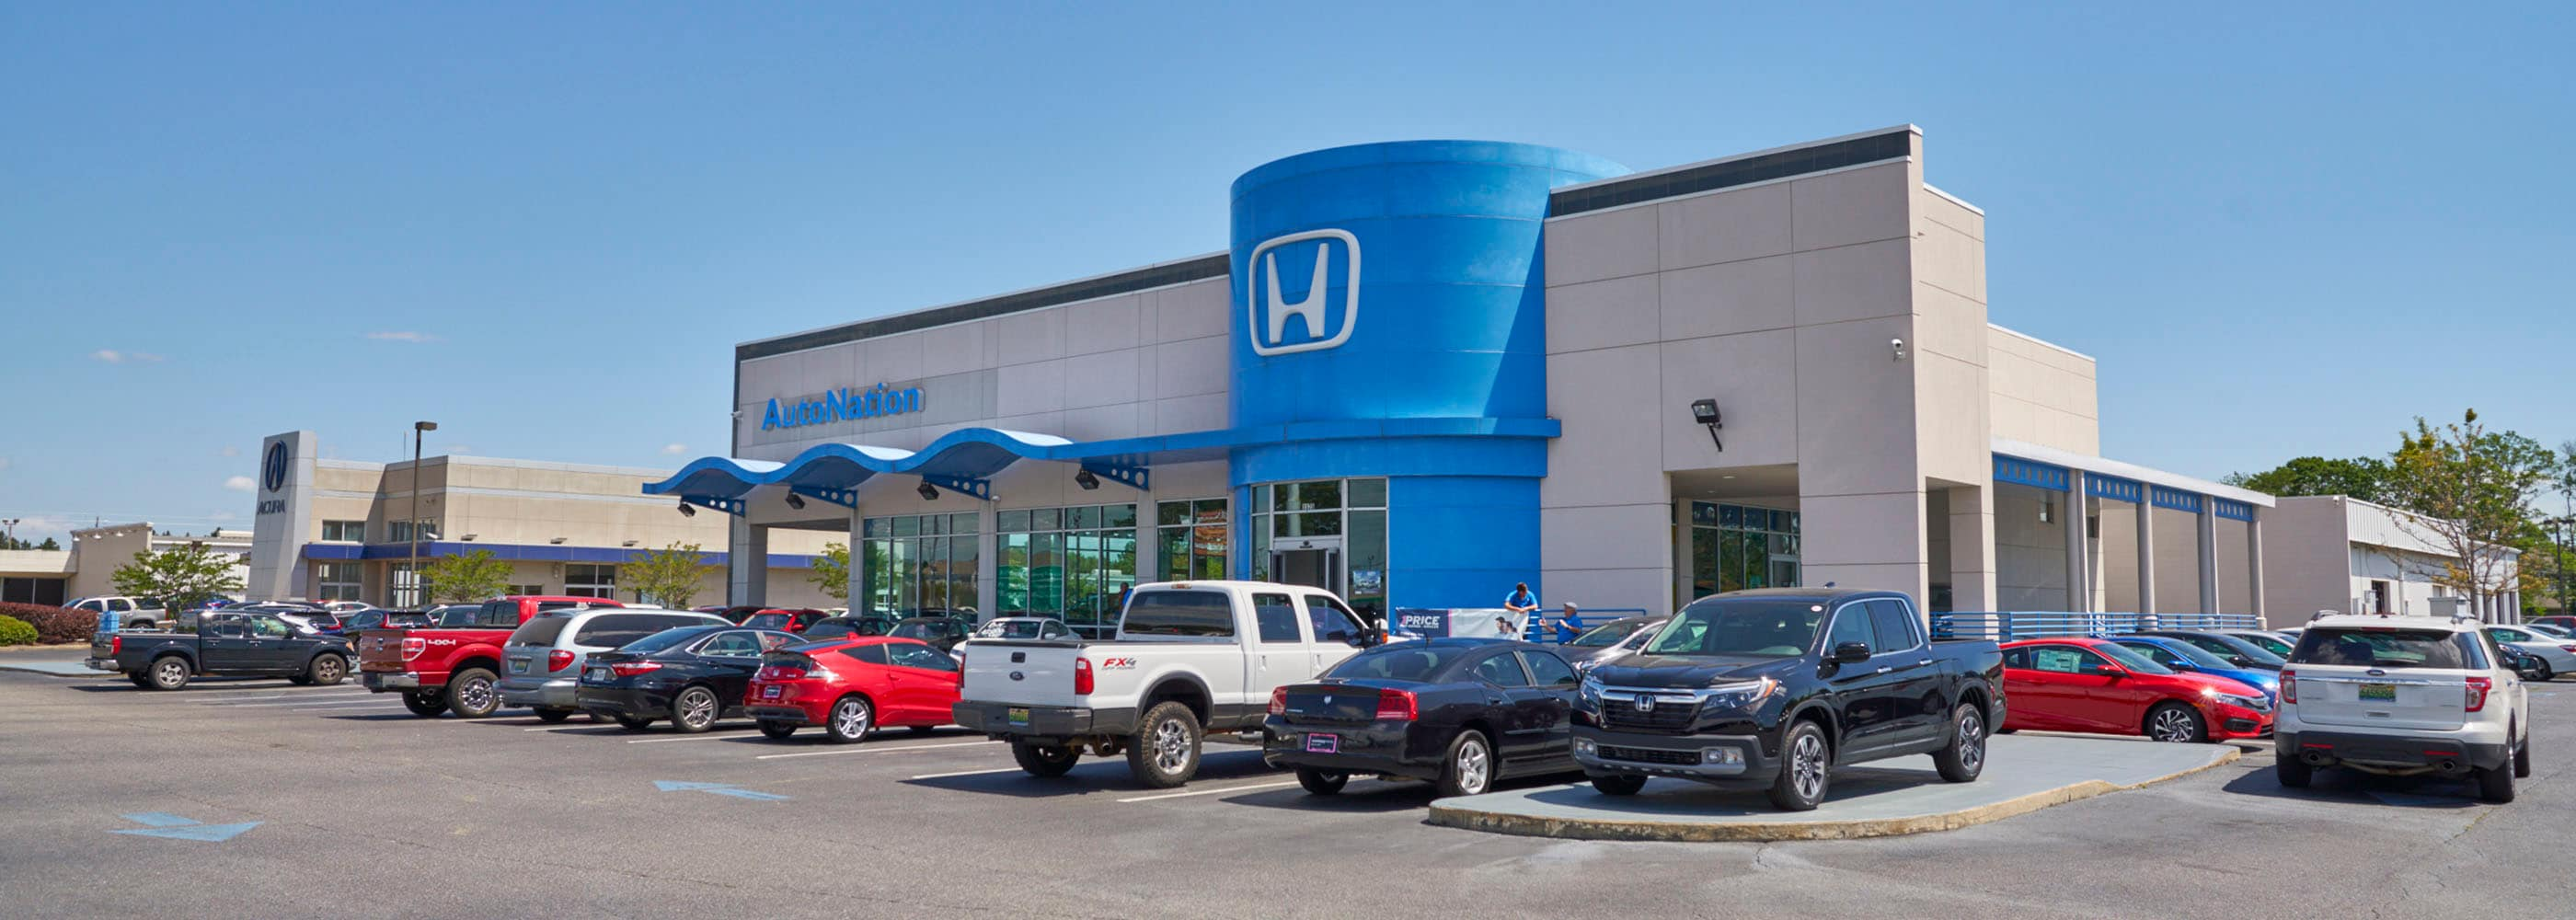 Exterior view of AutoNation Honda Tucson Auto Mall